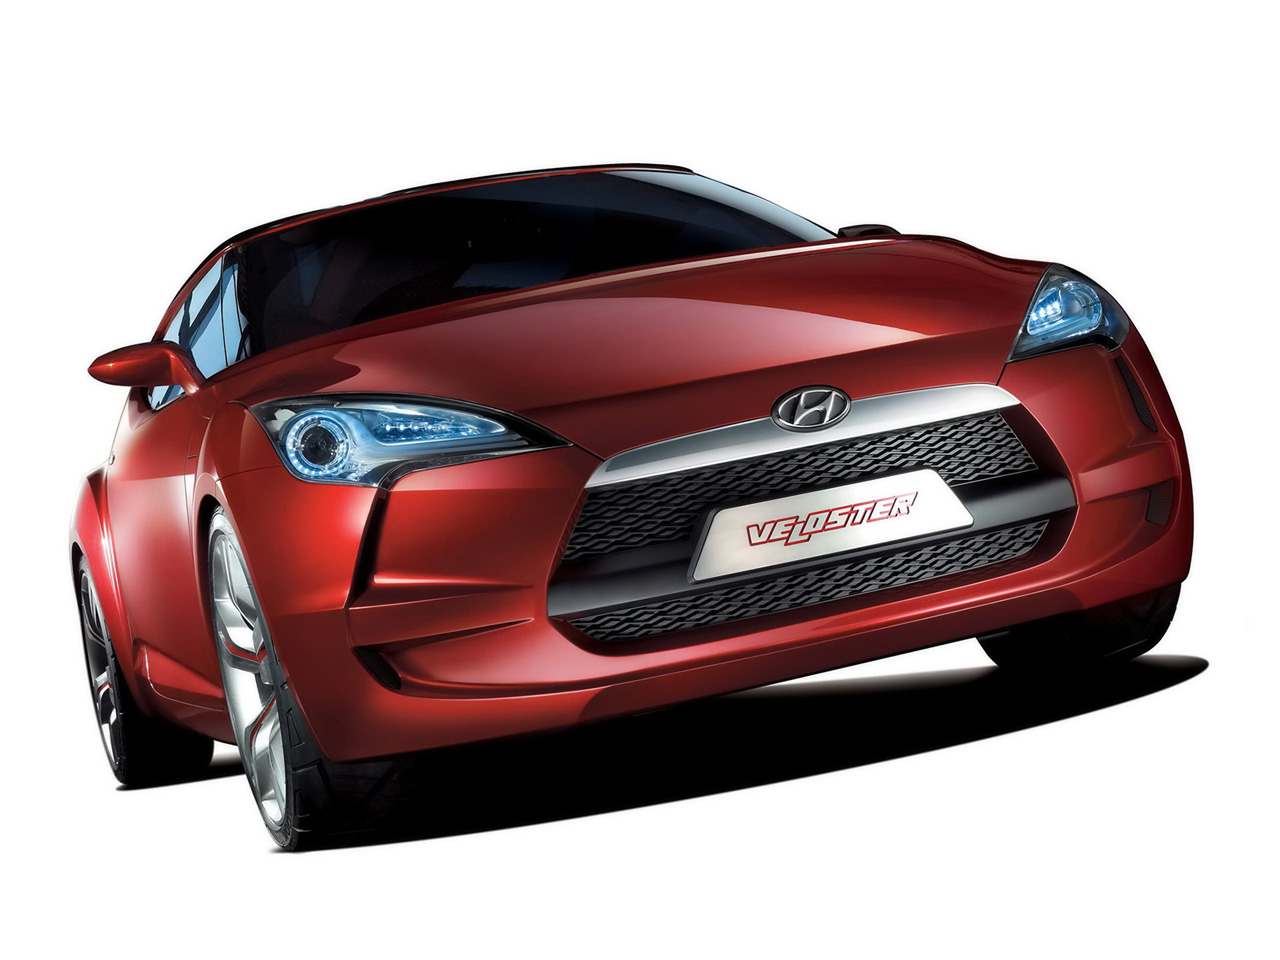 hyundai veloster concept 2011 Hyundai Veloster Concept   Photos, Specifications, Price, Reviews